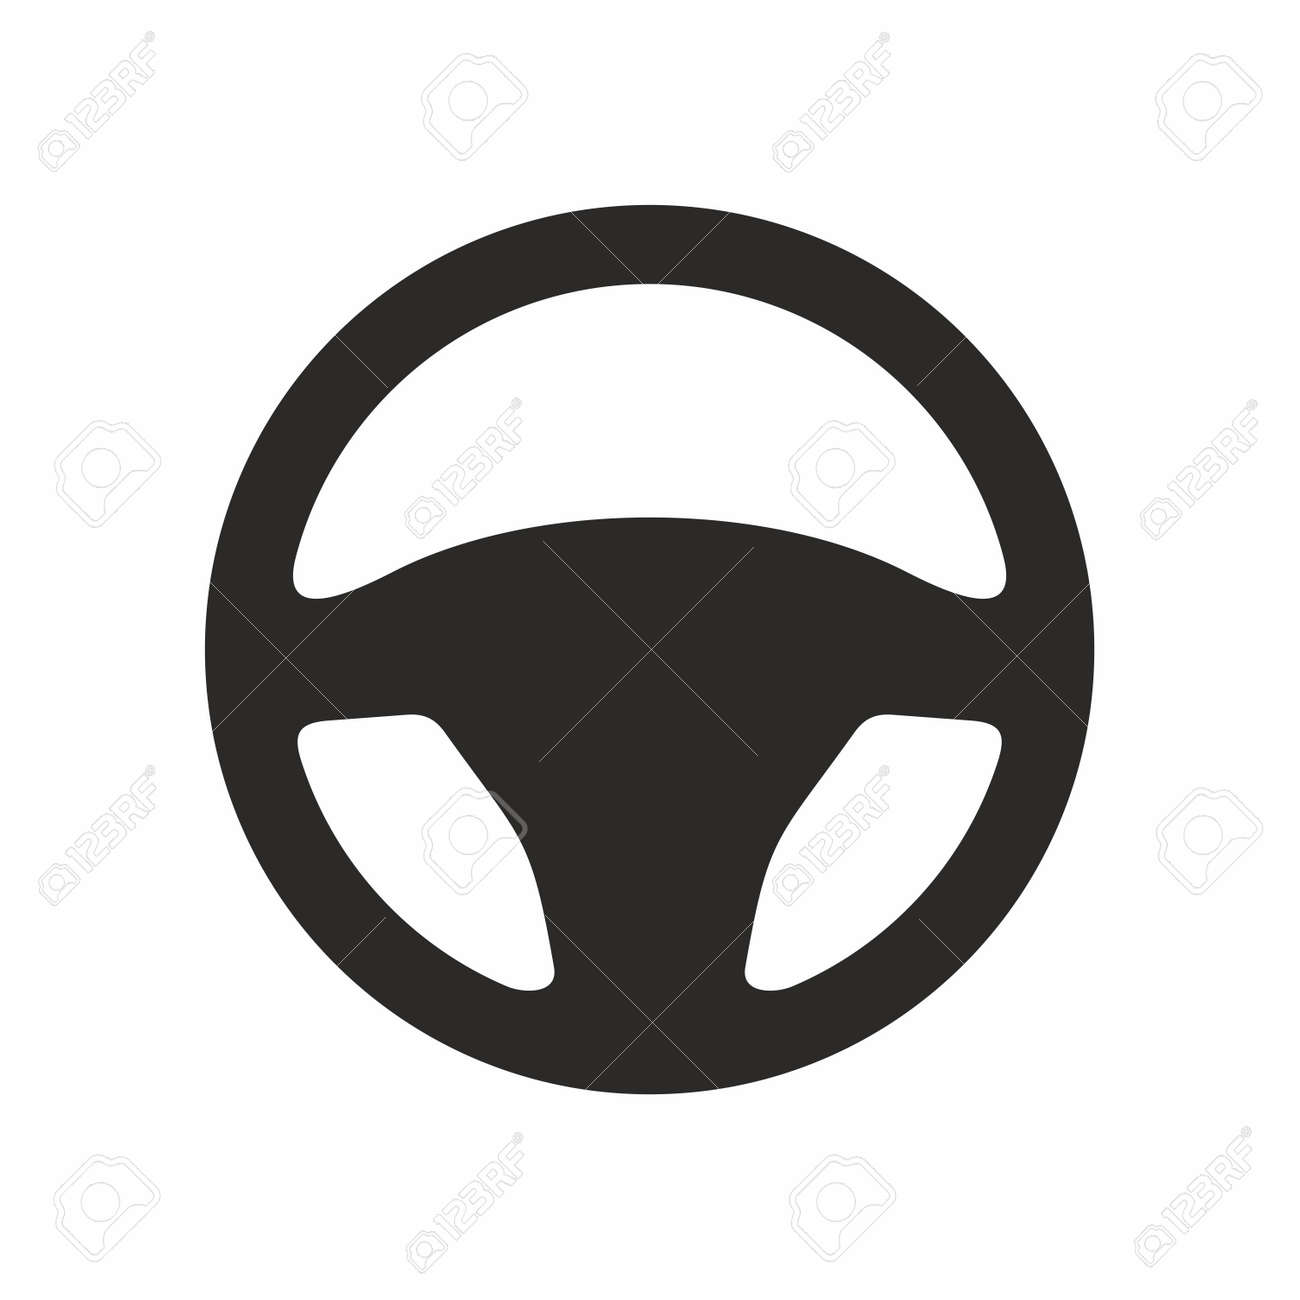 steering wheel vector icon royalty free cliparts vectors and stock illustration image 100084064 steering wheel vector icon